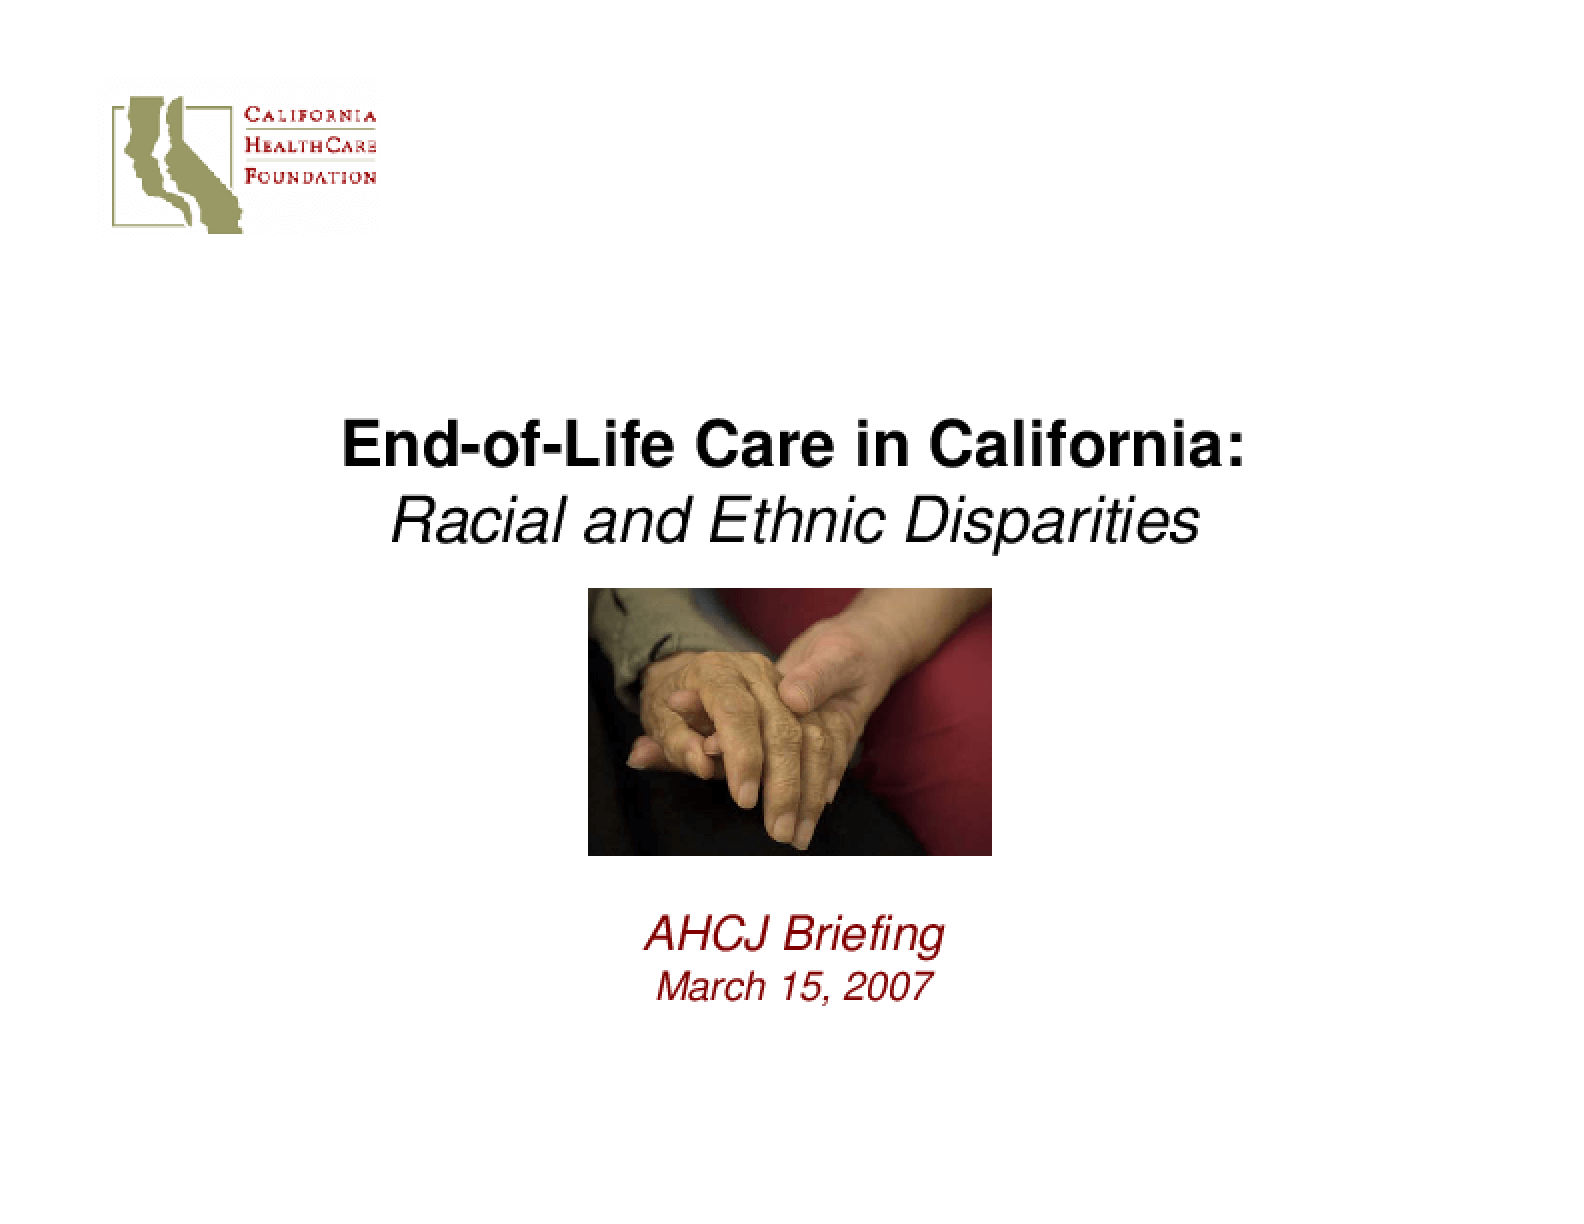 End-of-Life Care in California: Racial and Ethnic Disparities